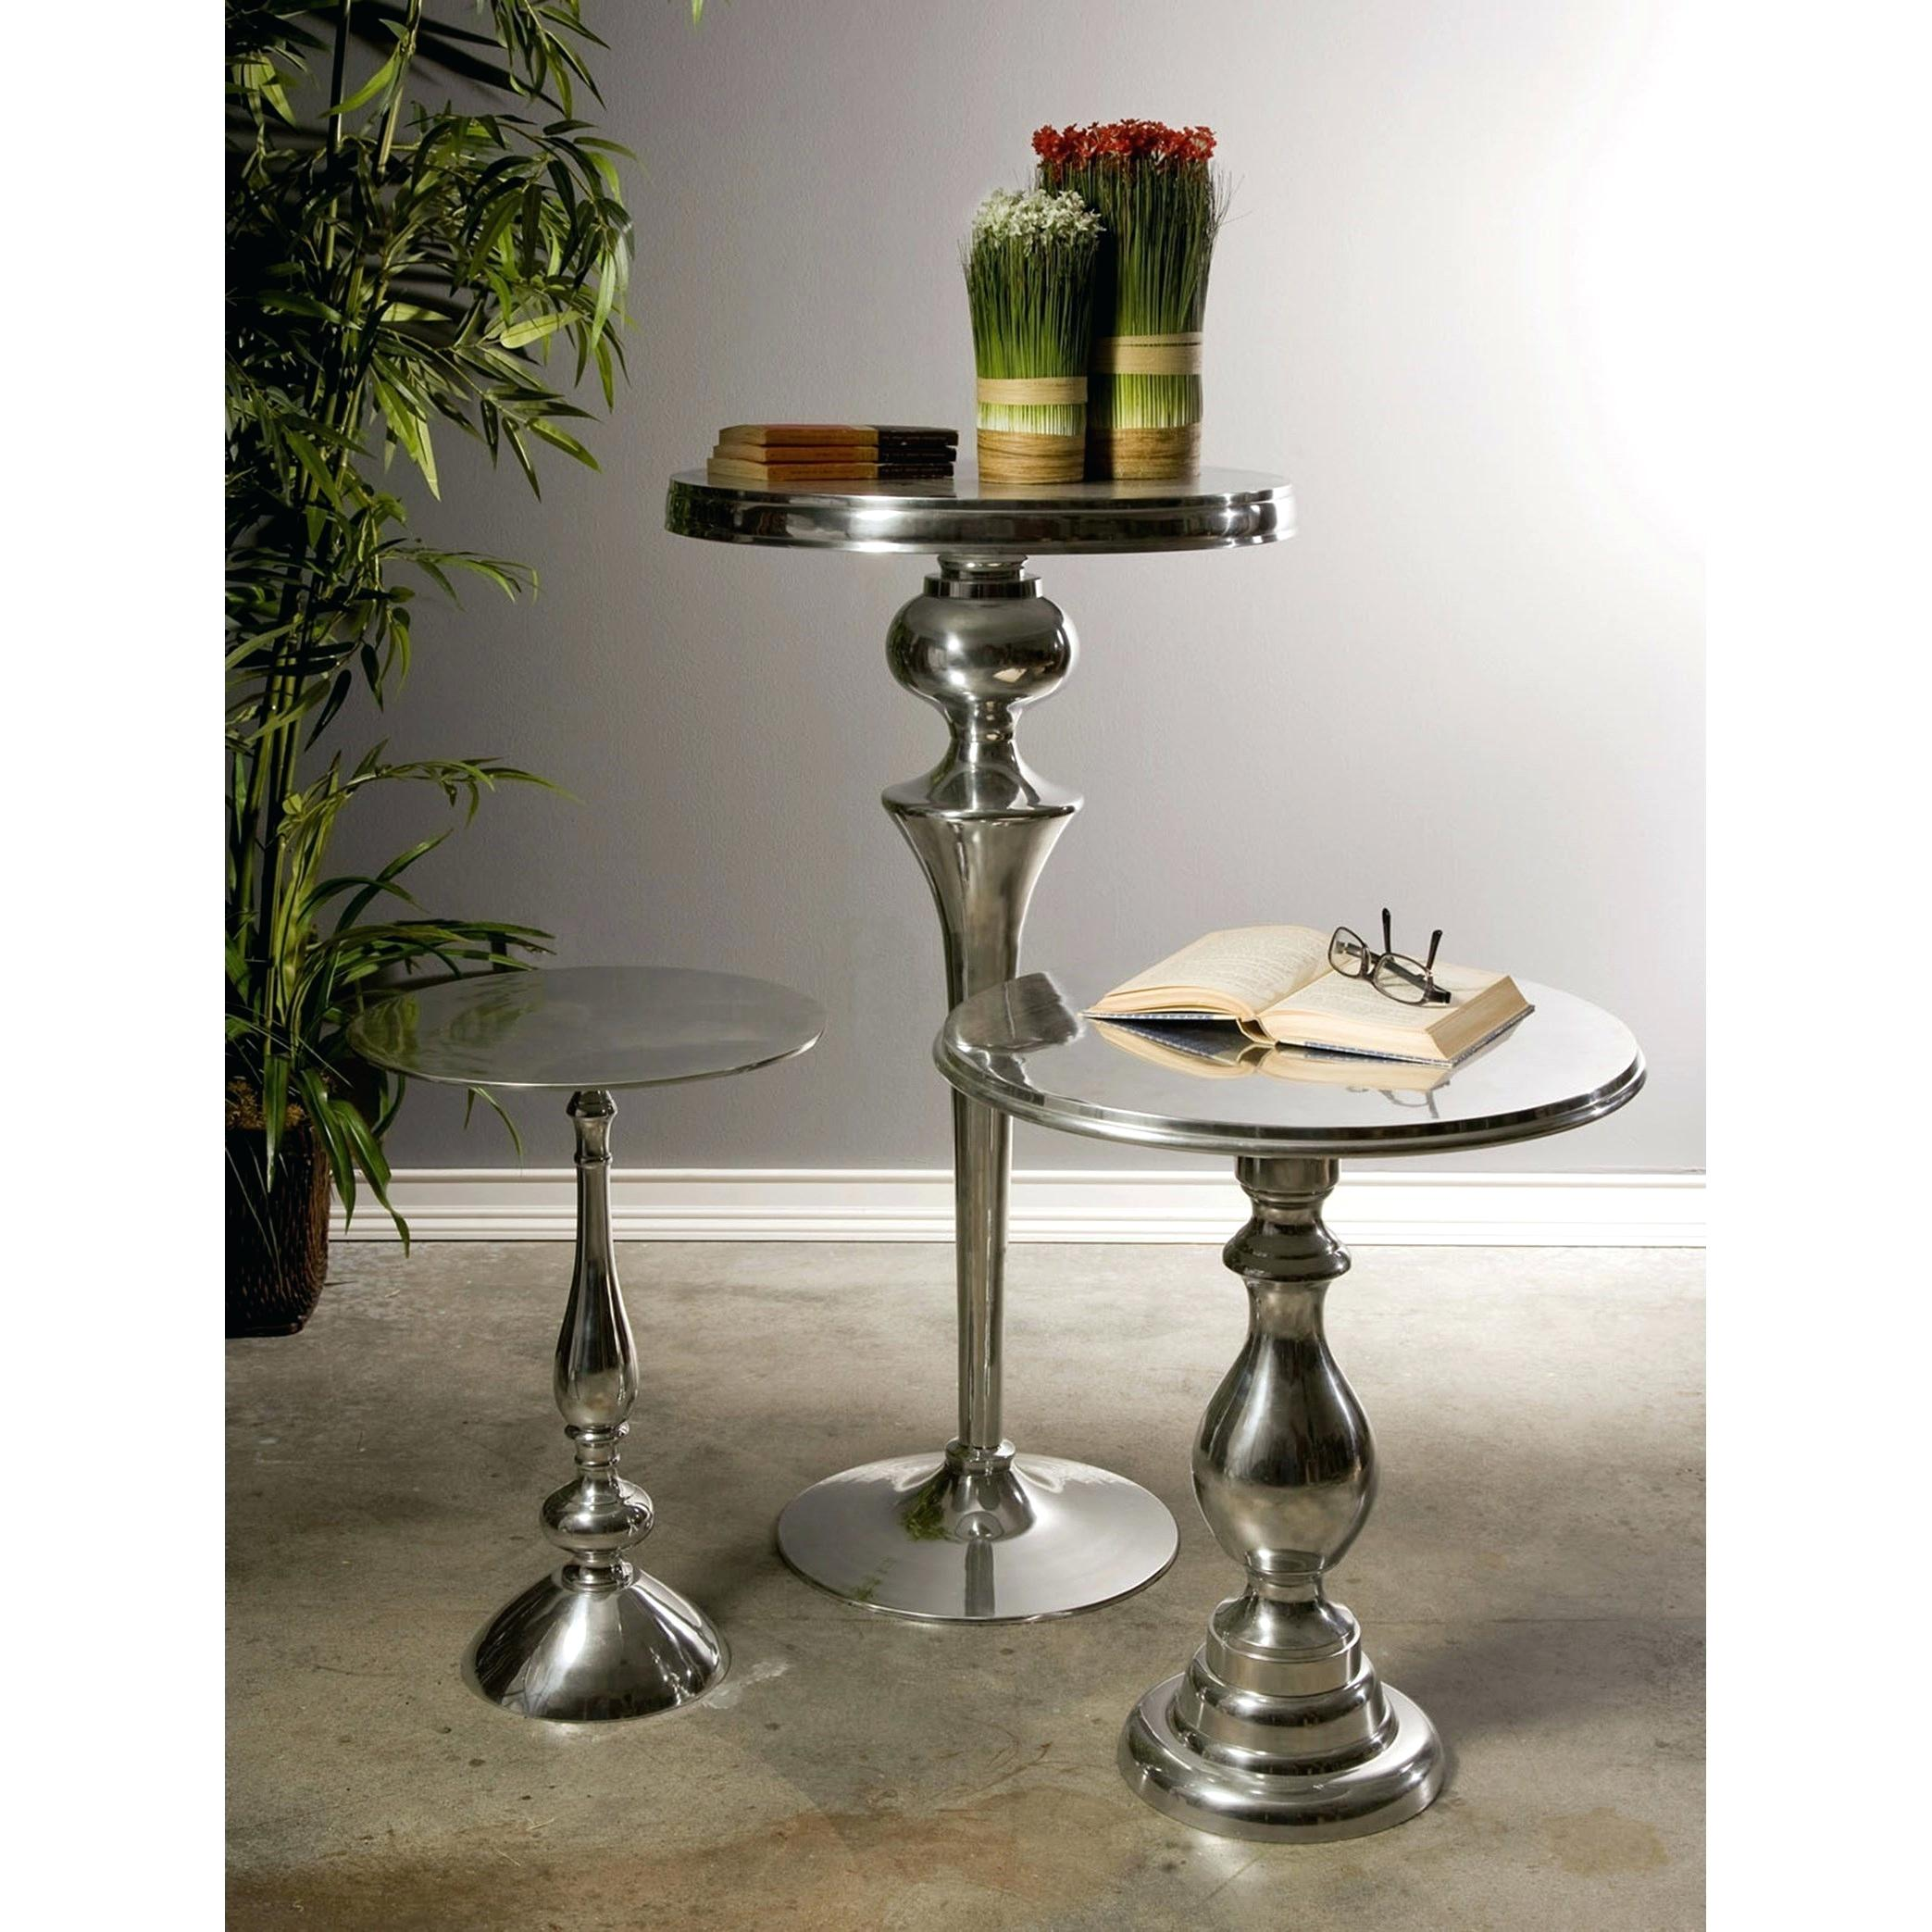 sidetables aluminum side table coffee and tables chair king round worldwide home accent cabinets hammered glass steel distressed chest piece chairs best lamps solid pine end